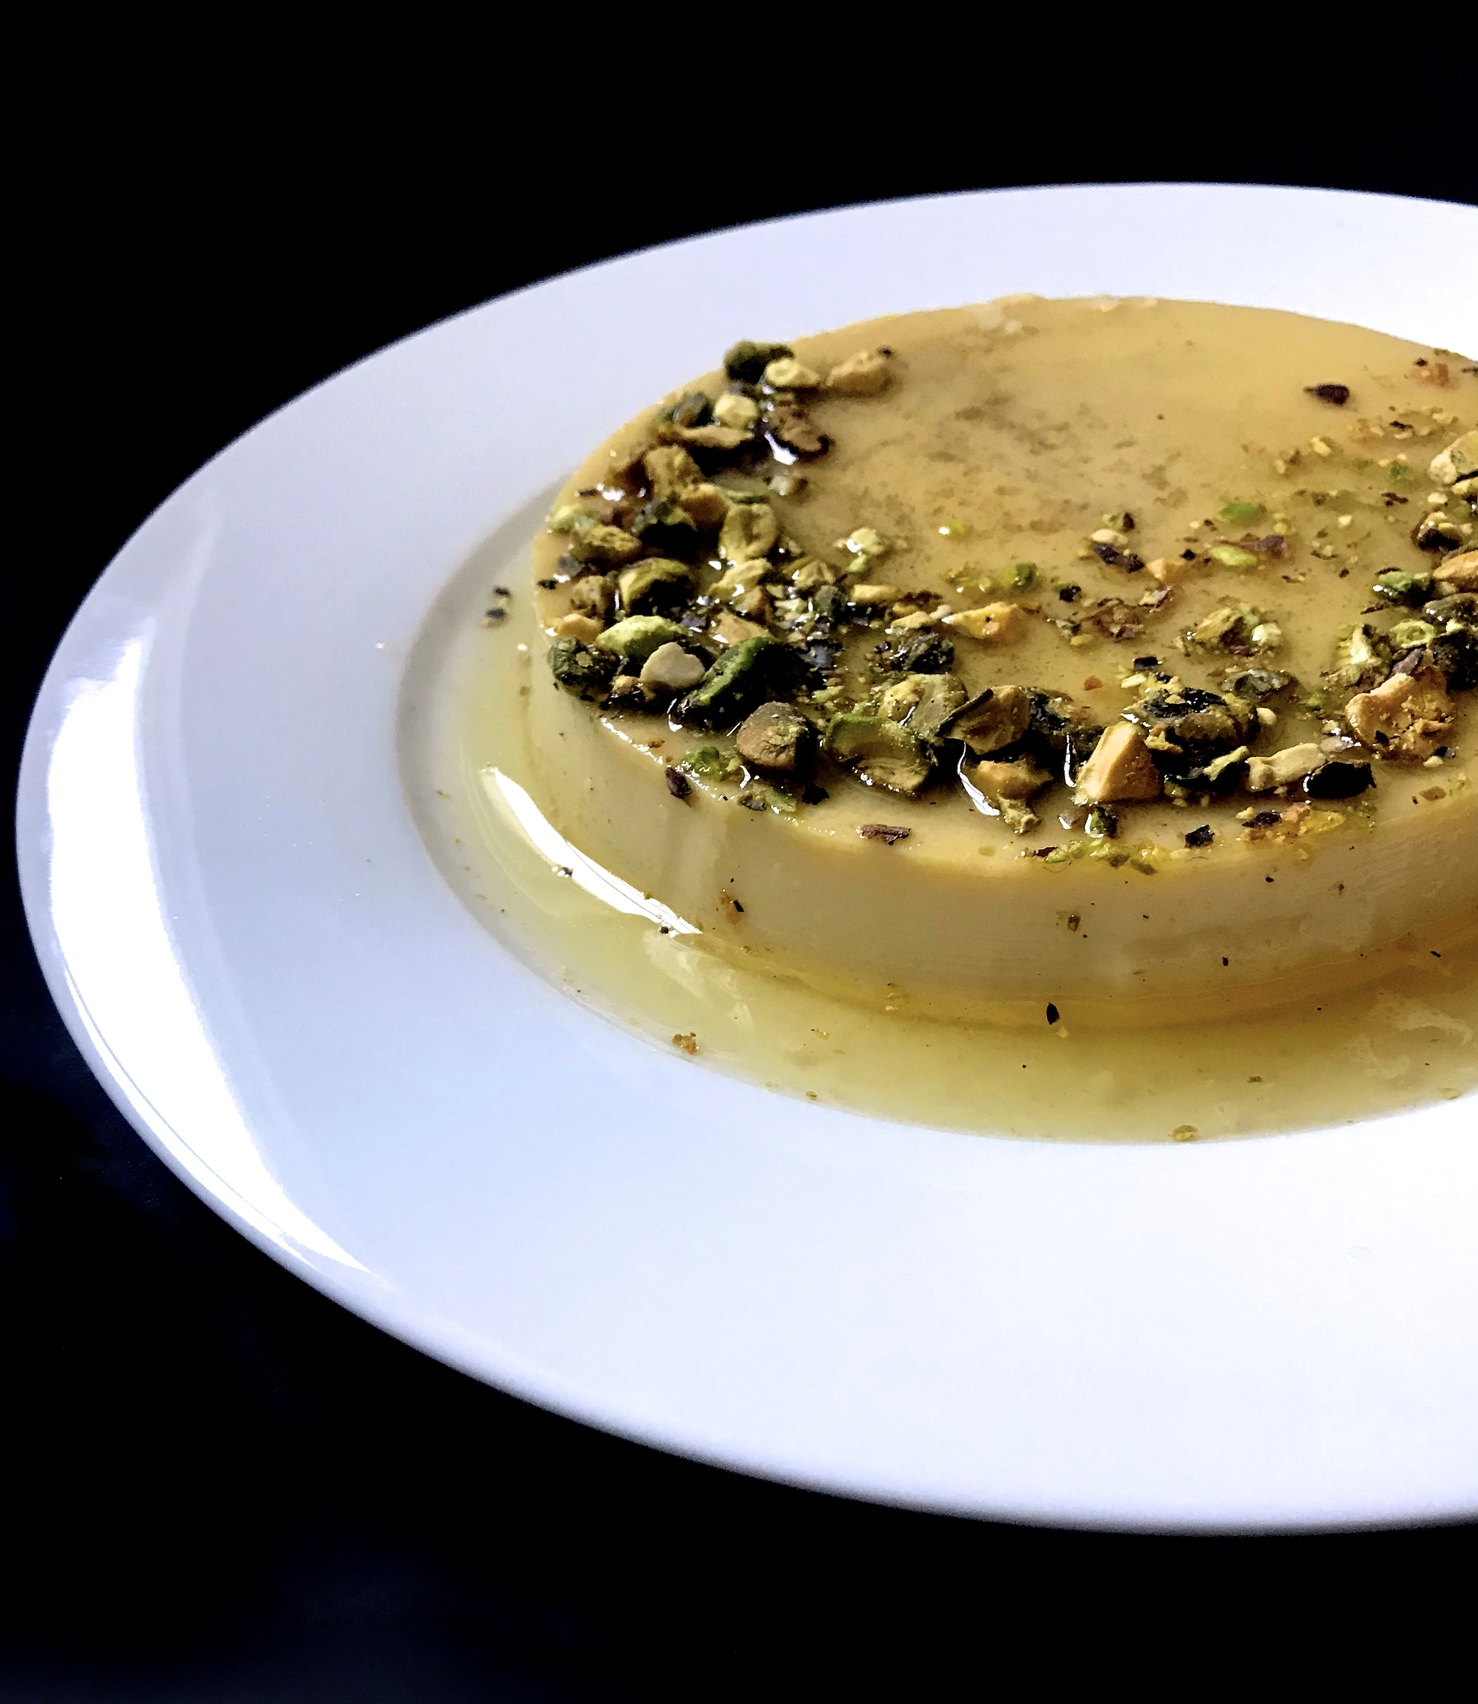 Cardamom Crème Caramel with Roasted Pistachios | Creamy and smooth crème caramel infused with cardamom and topped with roasted pistachios.